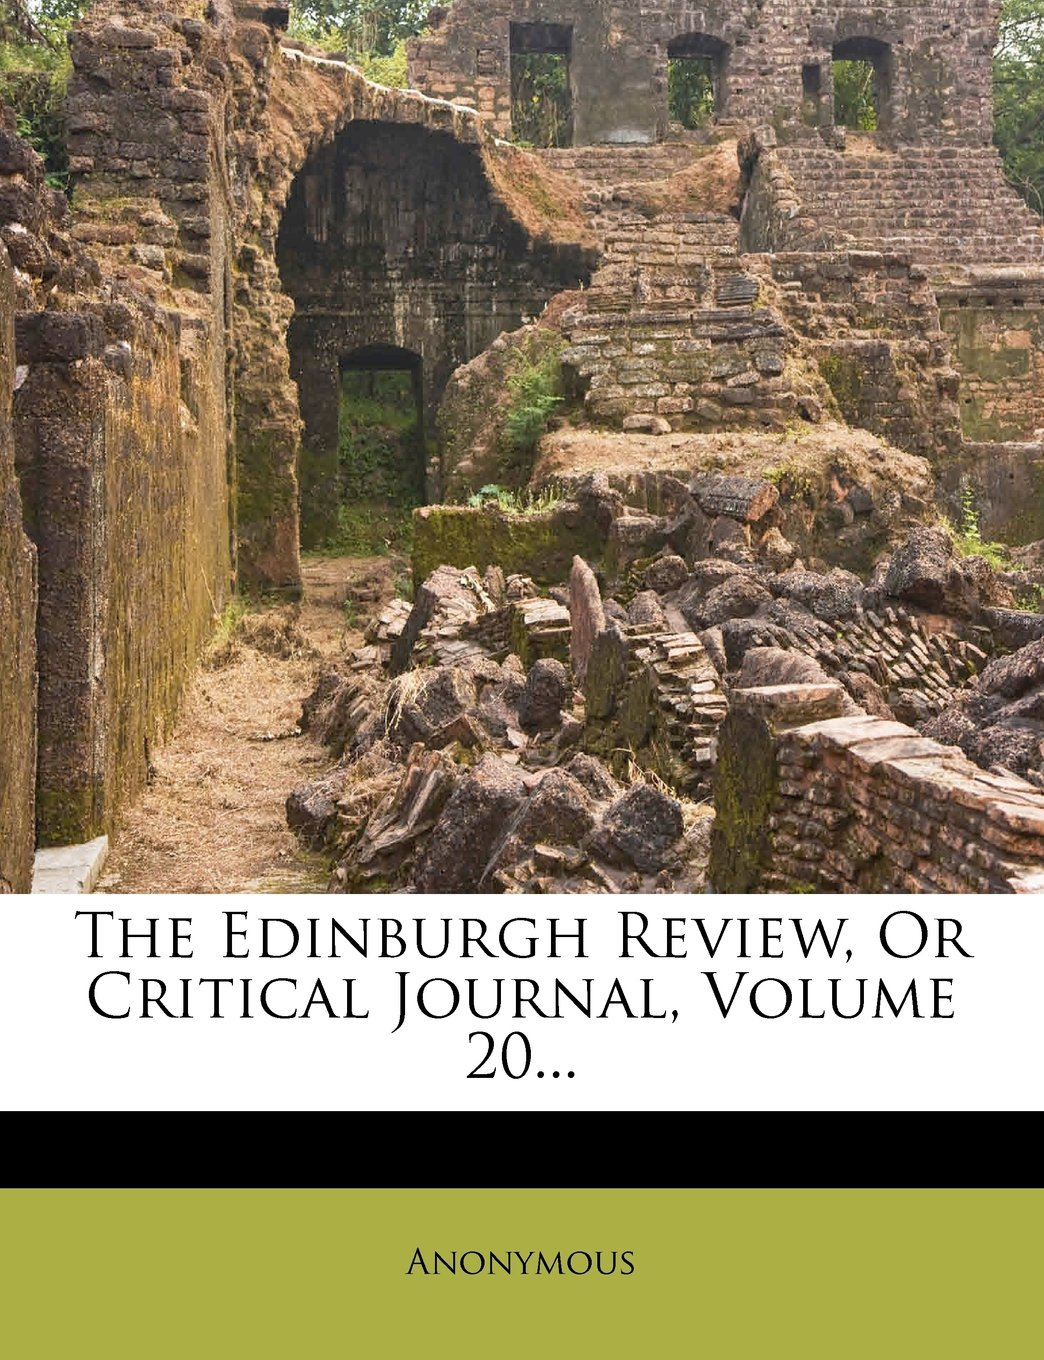 The Edinburgh Review, Or Critical Journal, Volume 20... pdf